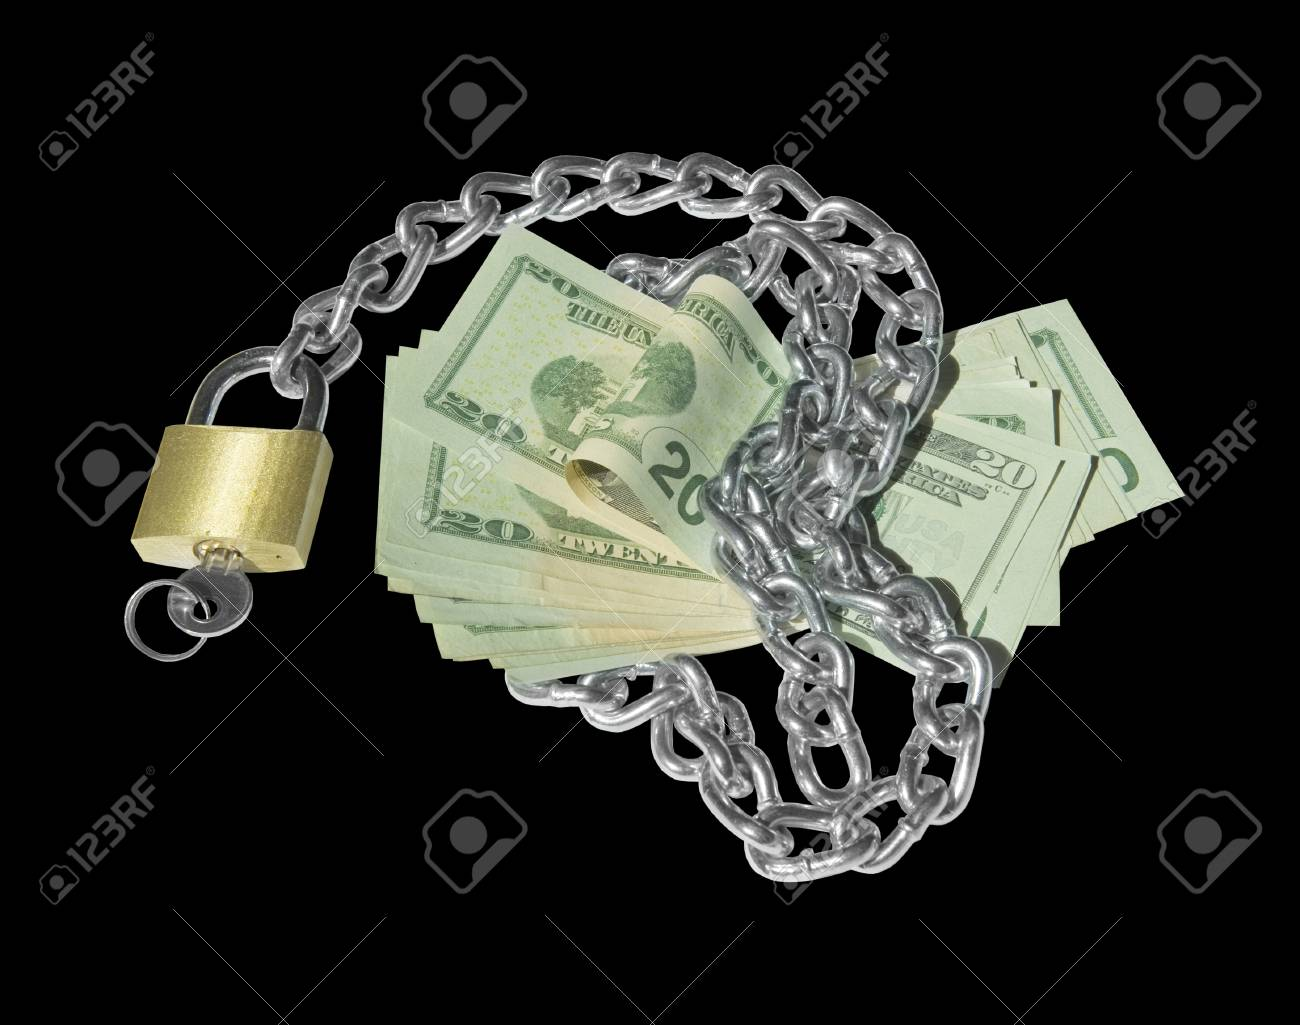 Liquid asset secured with locked thick chain. Isolated on black. Stock Photo - 17495537